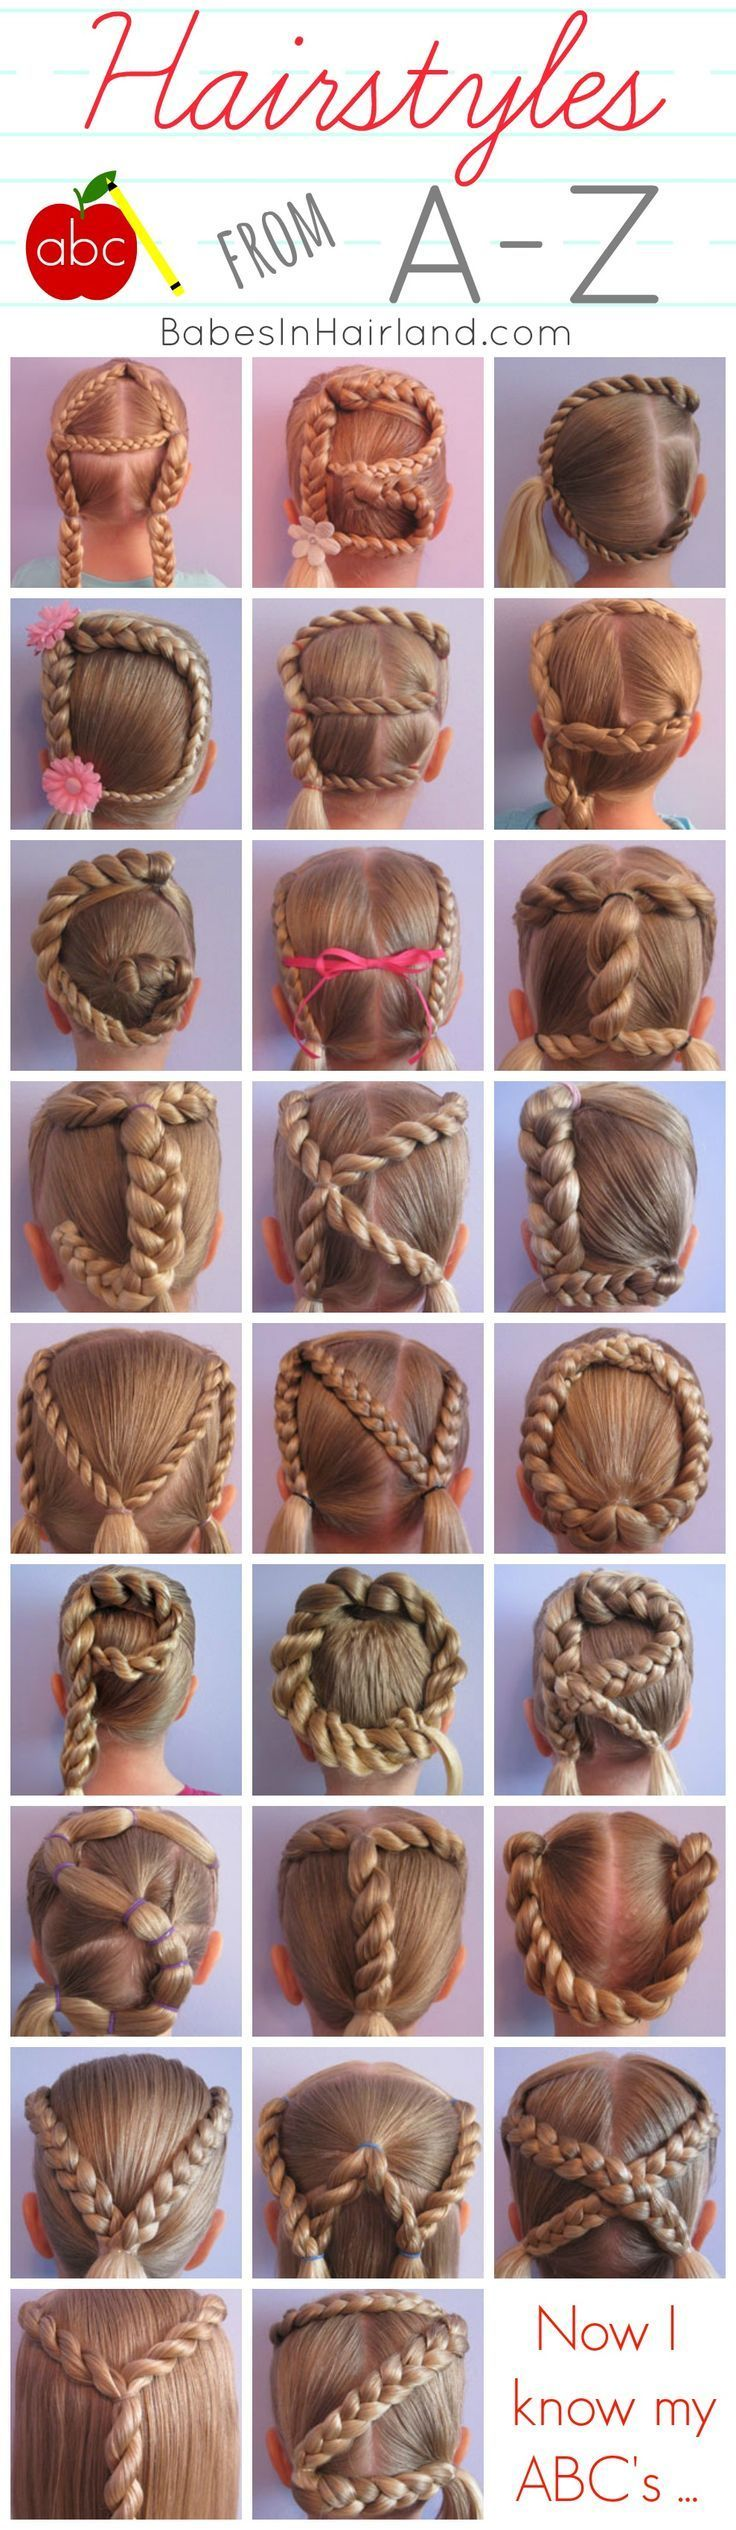 The 508 Best Wedge Hairstyles Layered Images On Pinterest Hair Cut